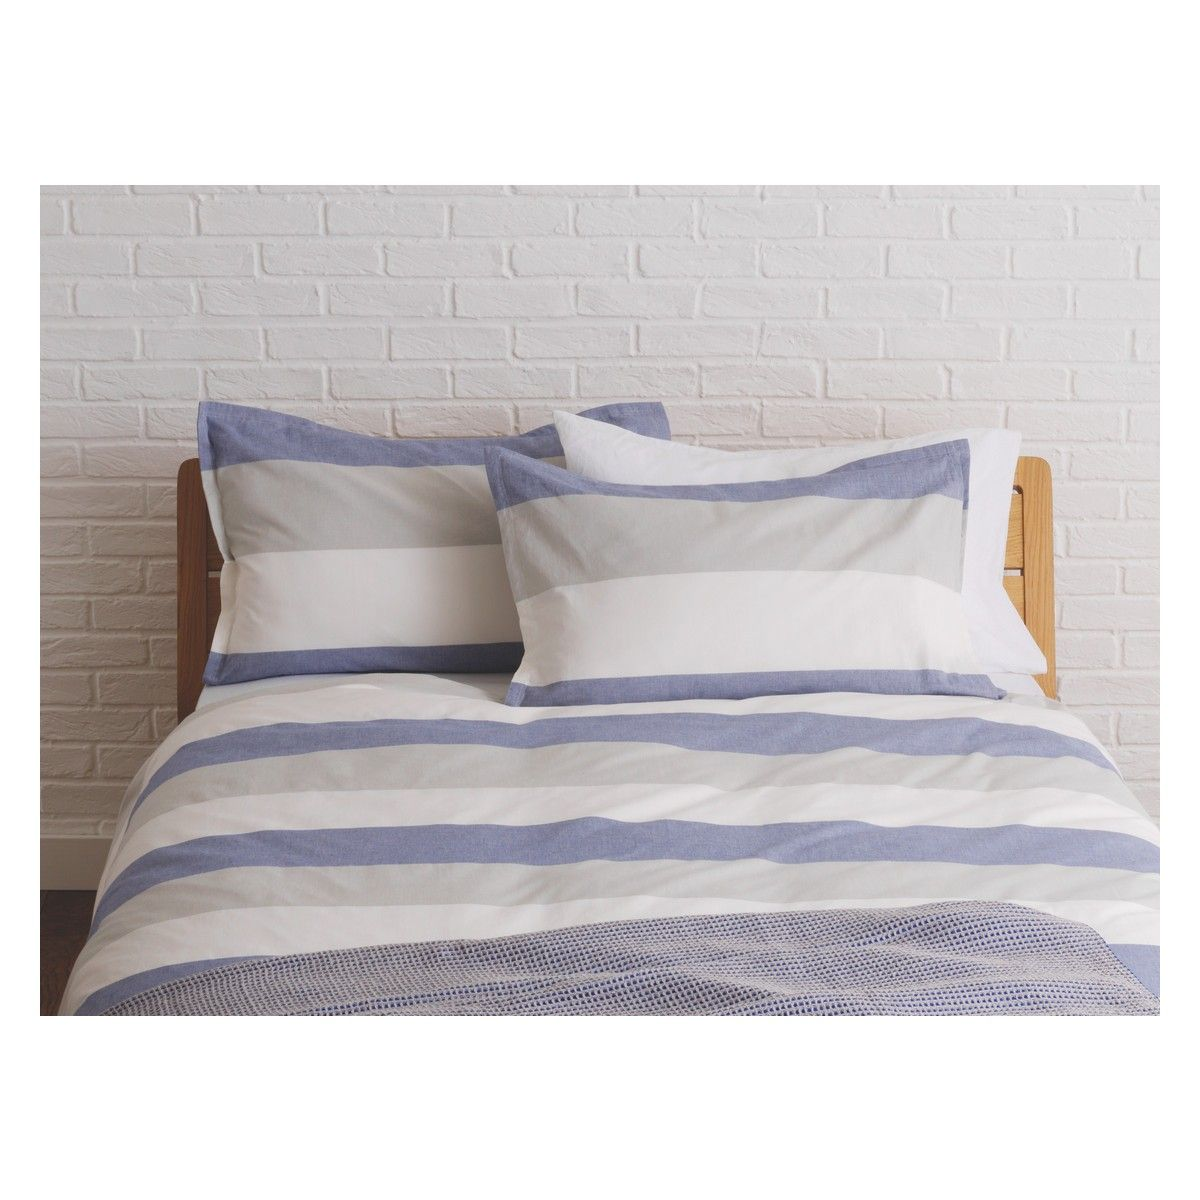 Buy Duvet Cover Boston Blue And Grey Stripe Kingsize Duvet Cover Buy Now At